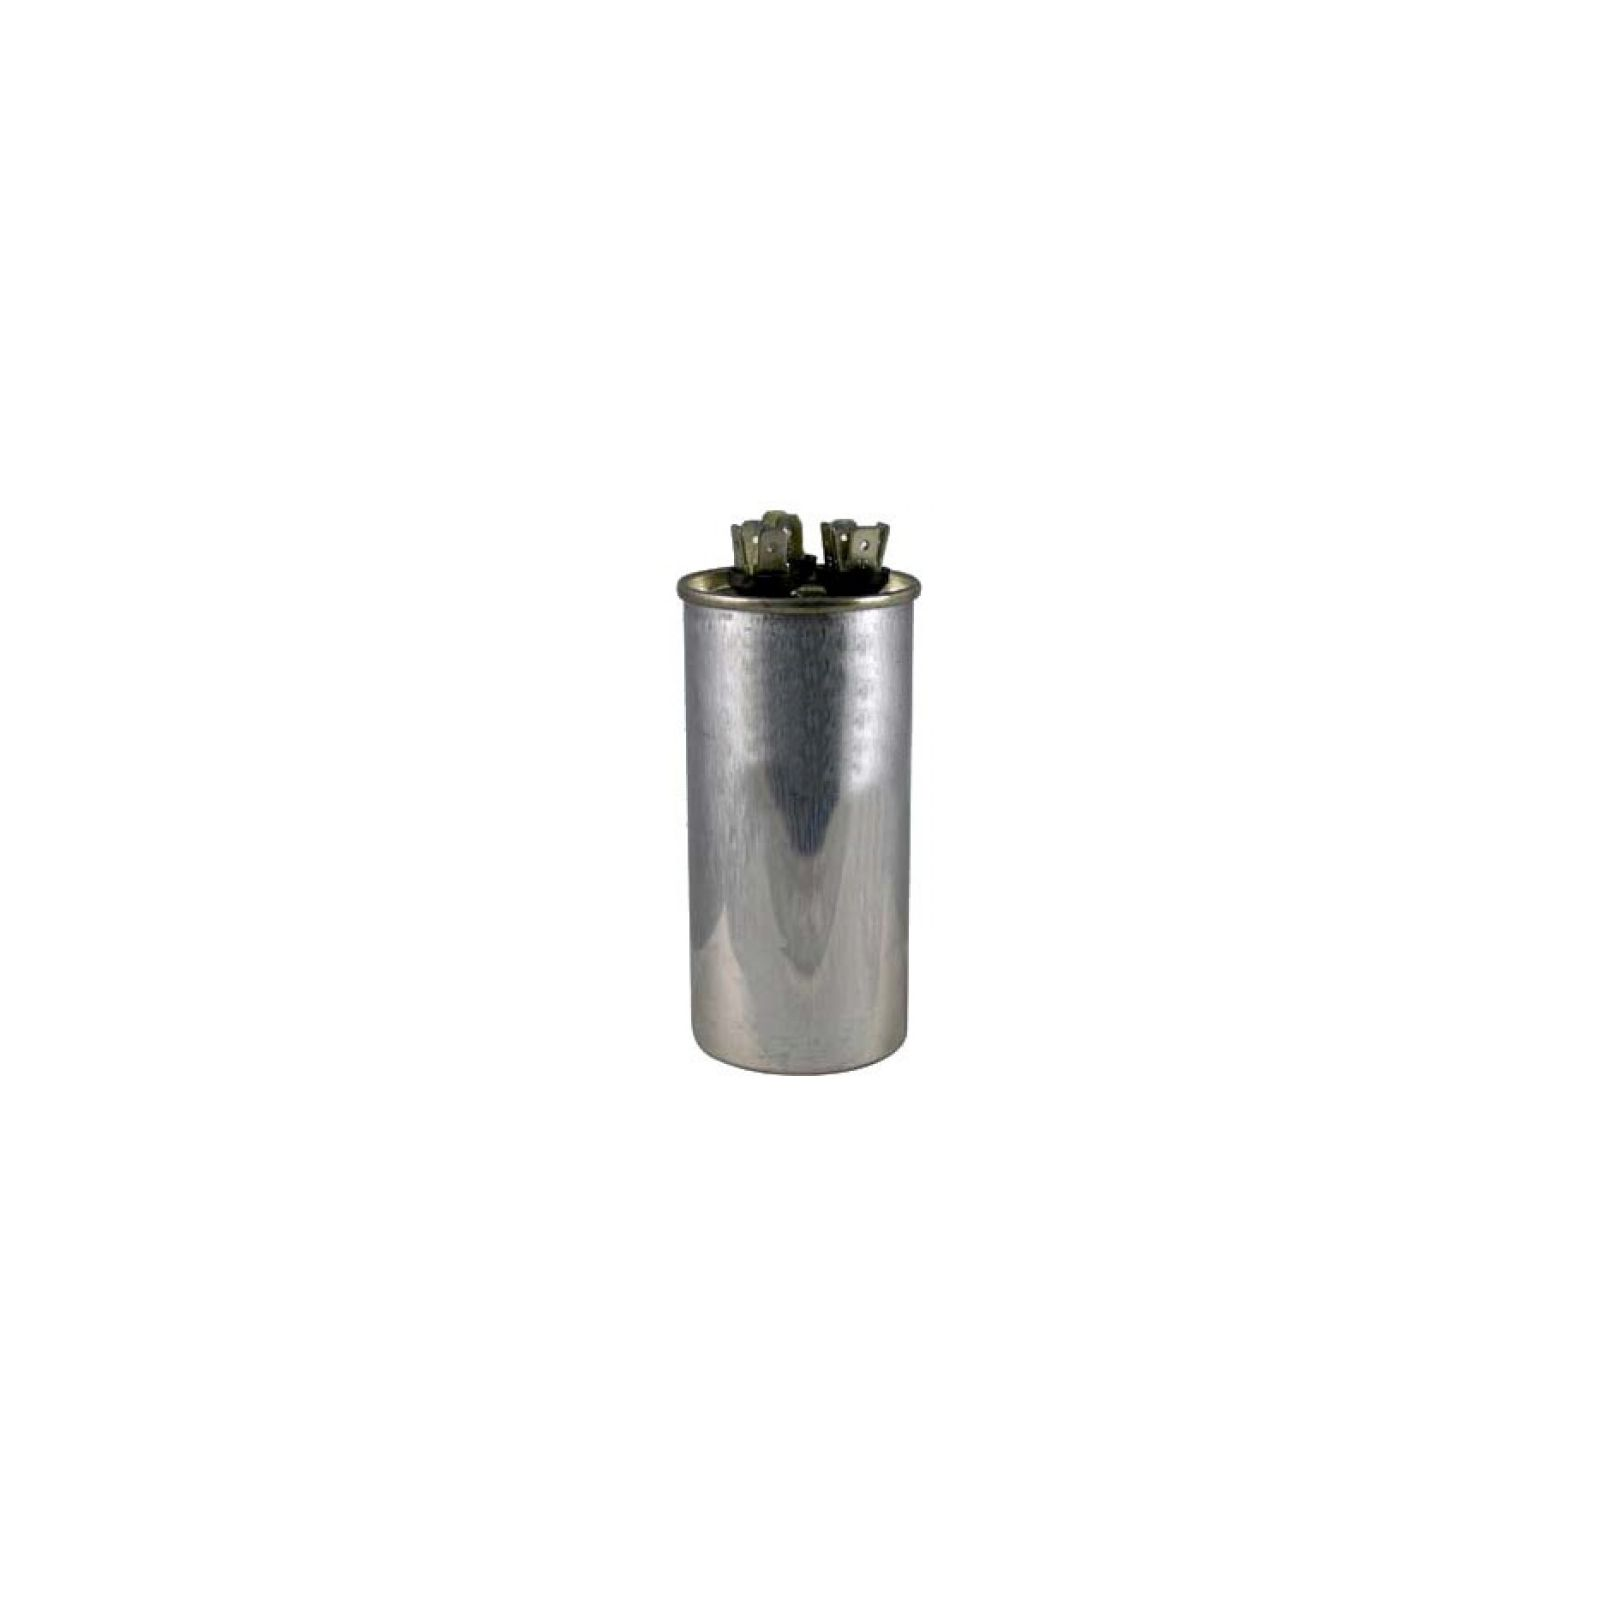 Nortek 01-0292 - Run Capacitor, 40/7.5/440 VAC, Round, Metal